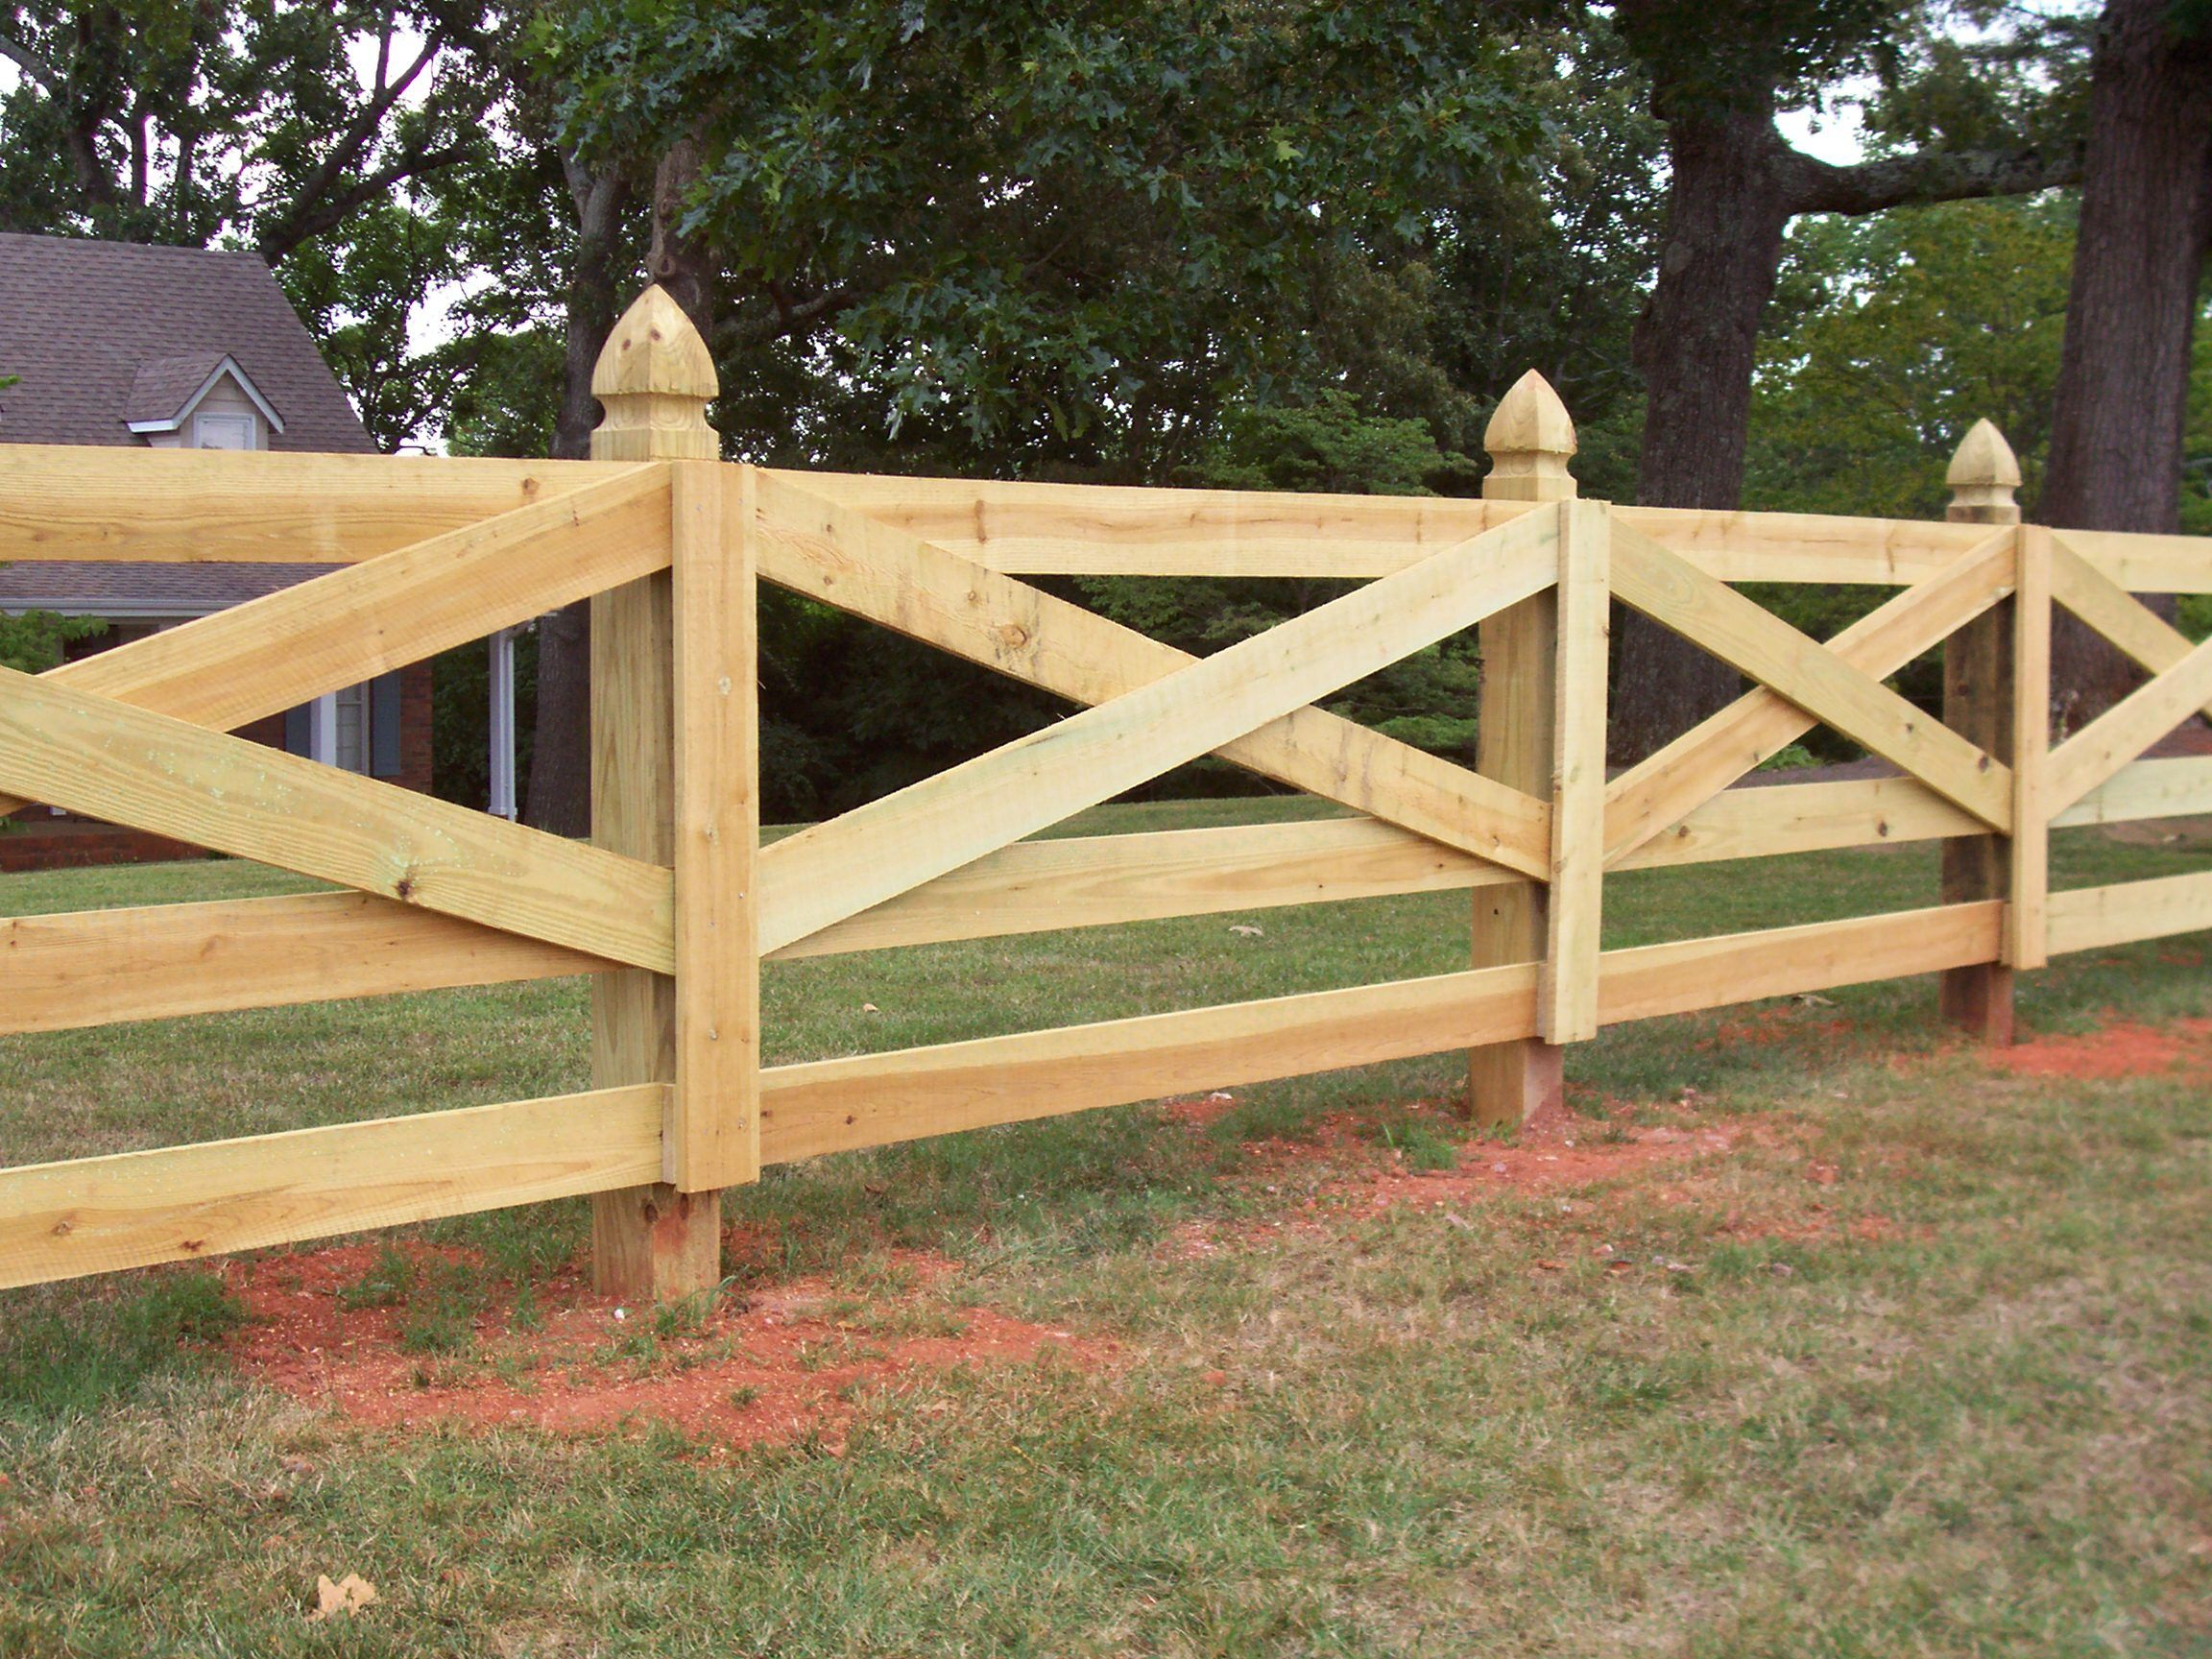 37 Stylish Privacy Fence Ideas For Outdoor Spaces Fl House Wood